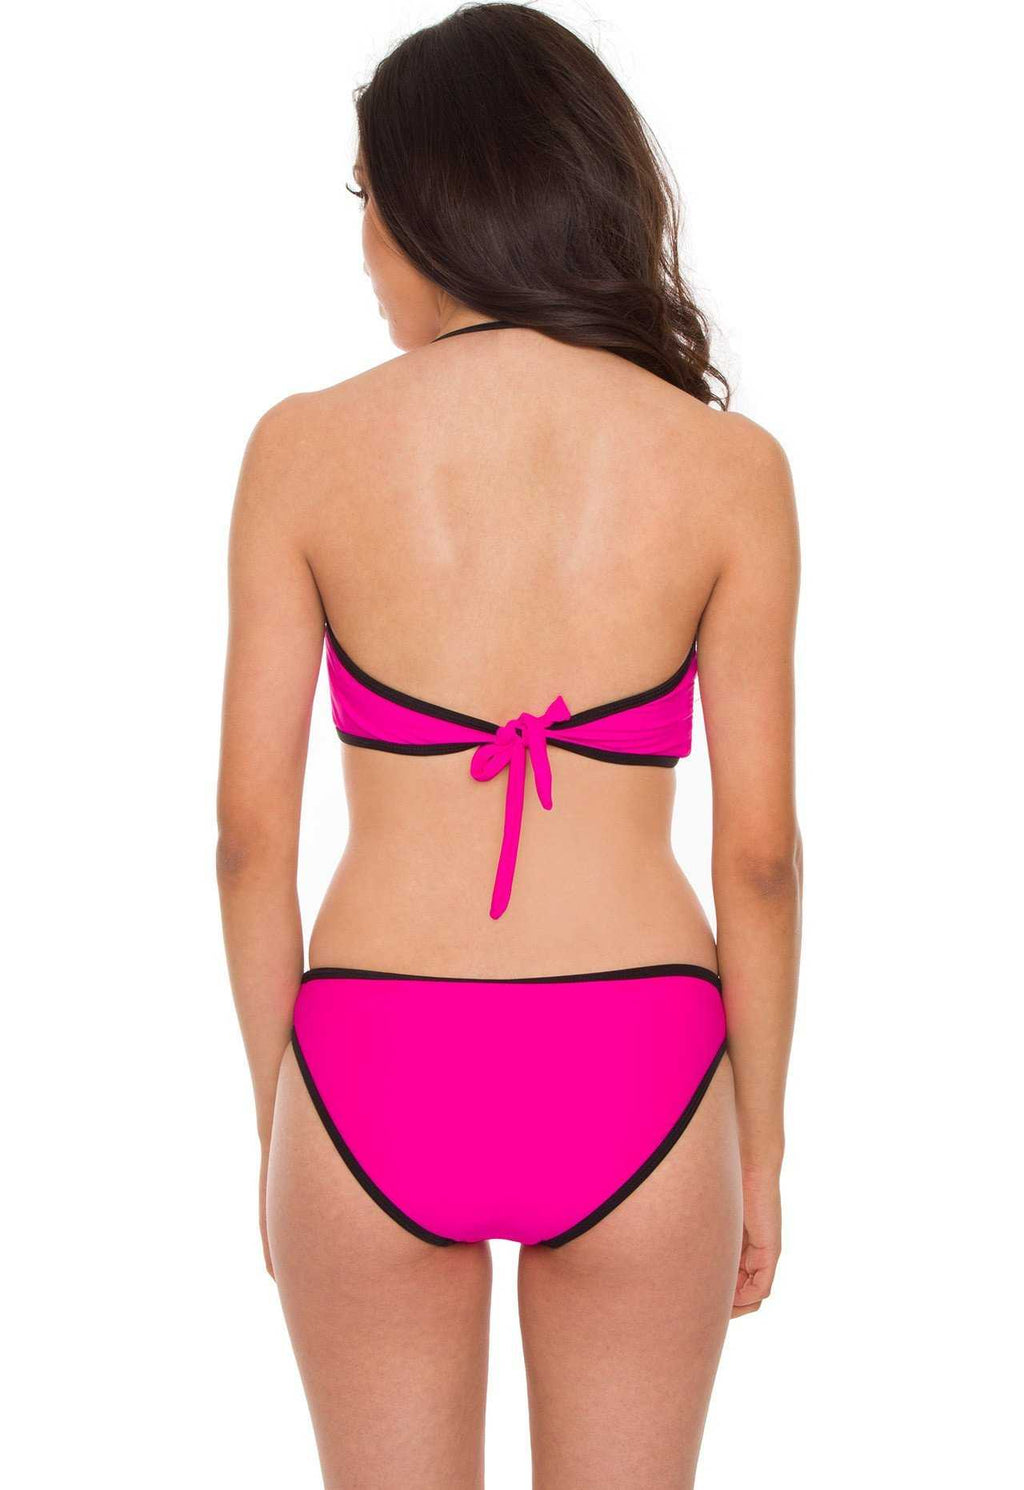 Swimwear - Marisol Bathing Top - Hot Pink